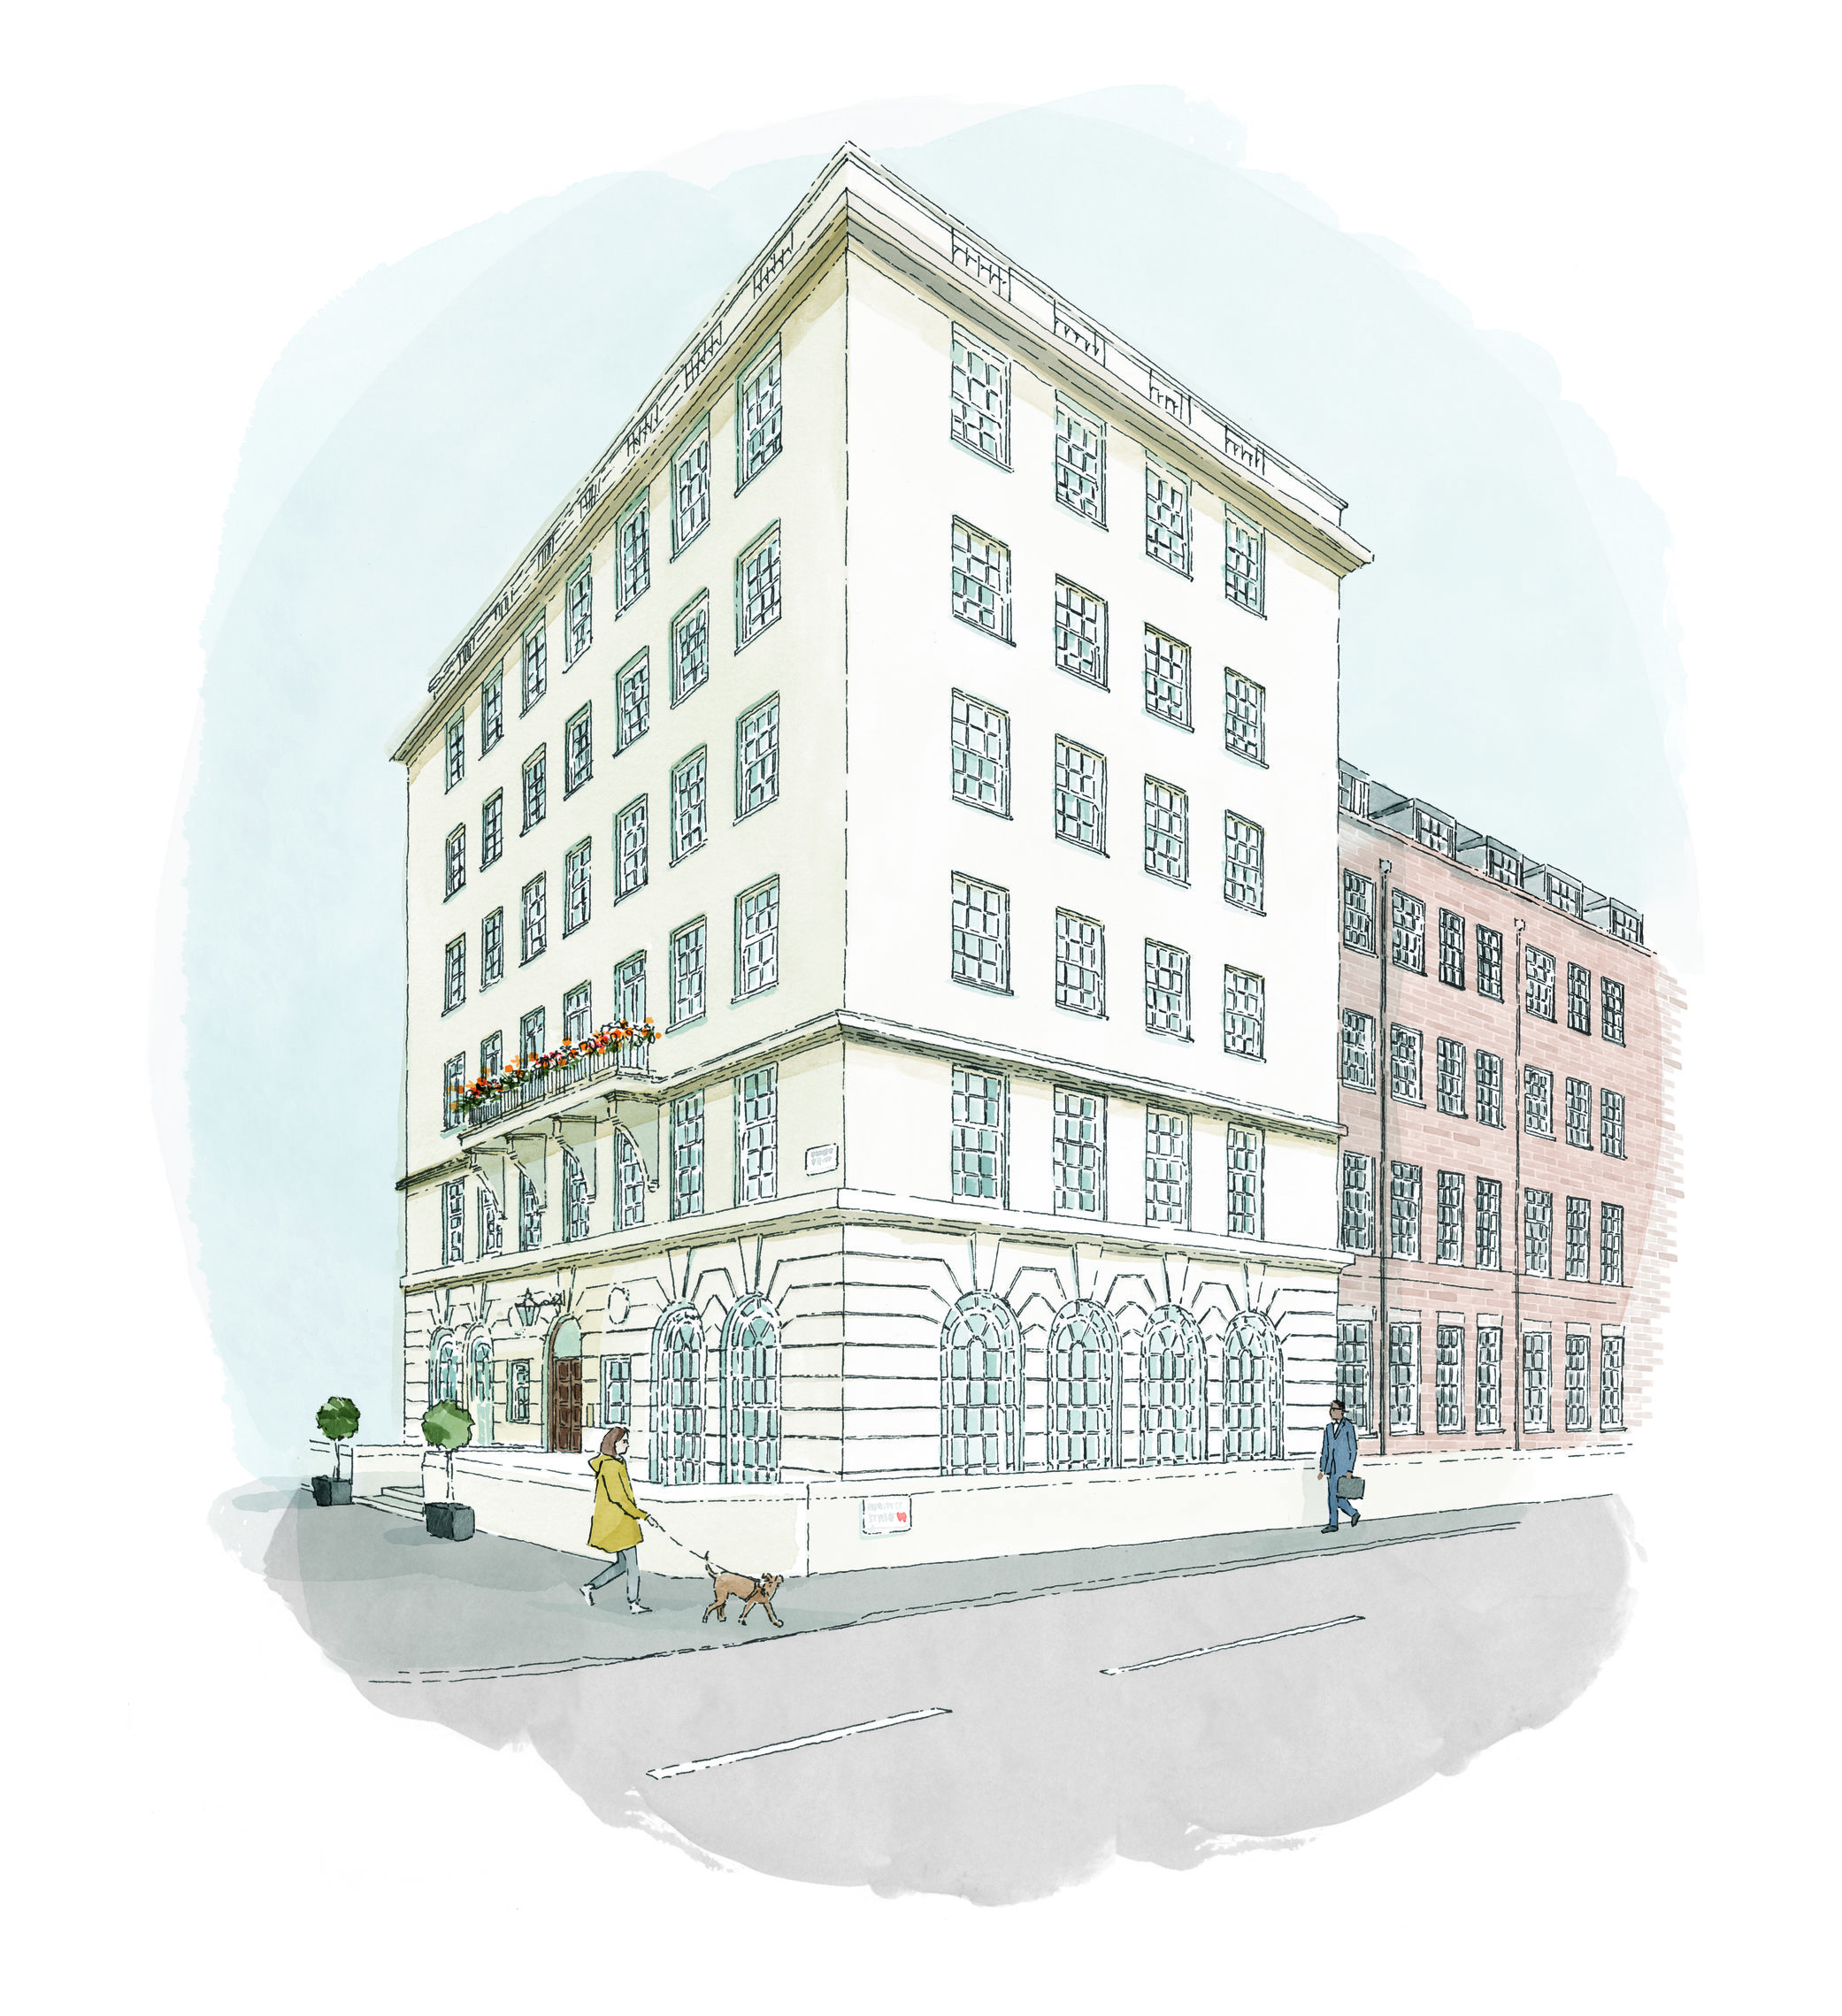 The clinic will be located along Portland Place in central London / submitted